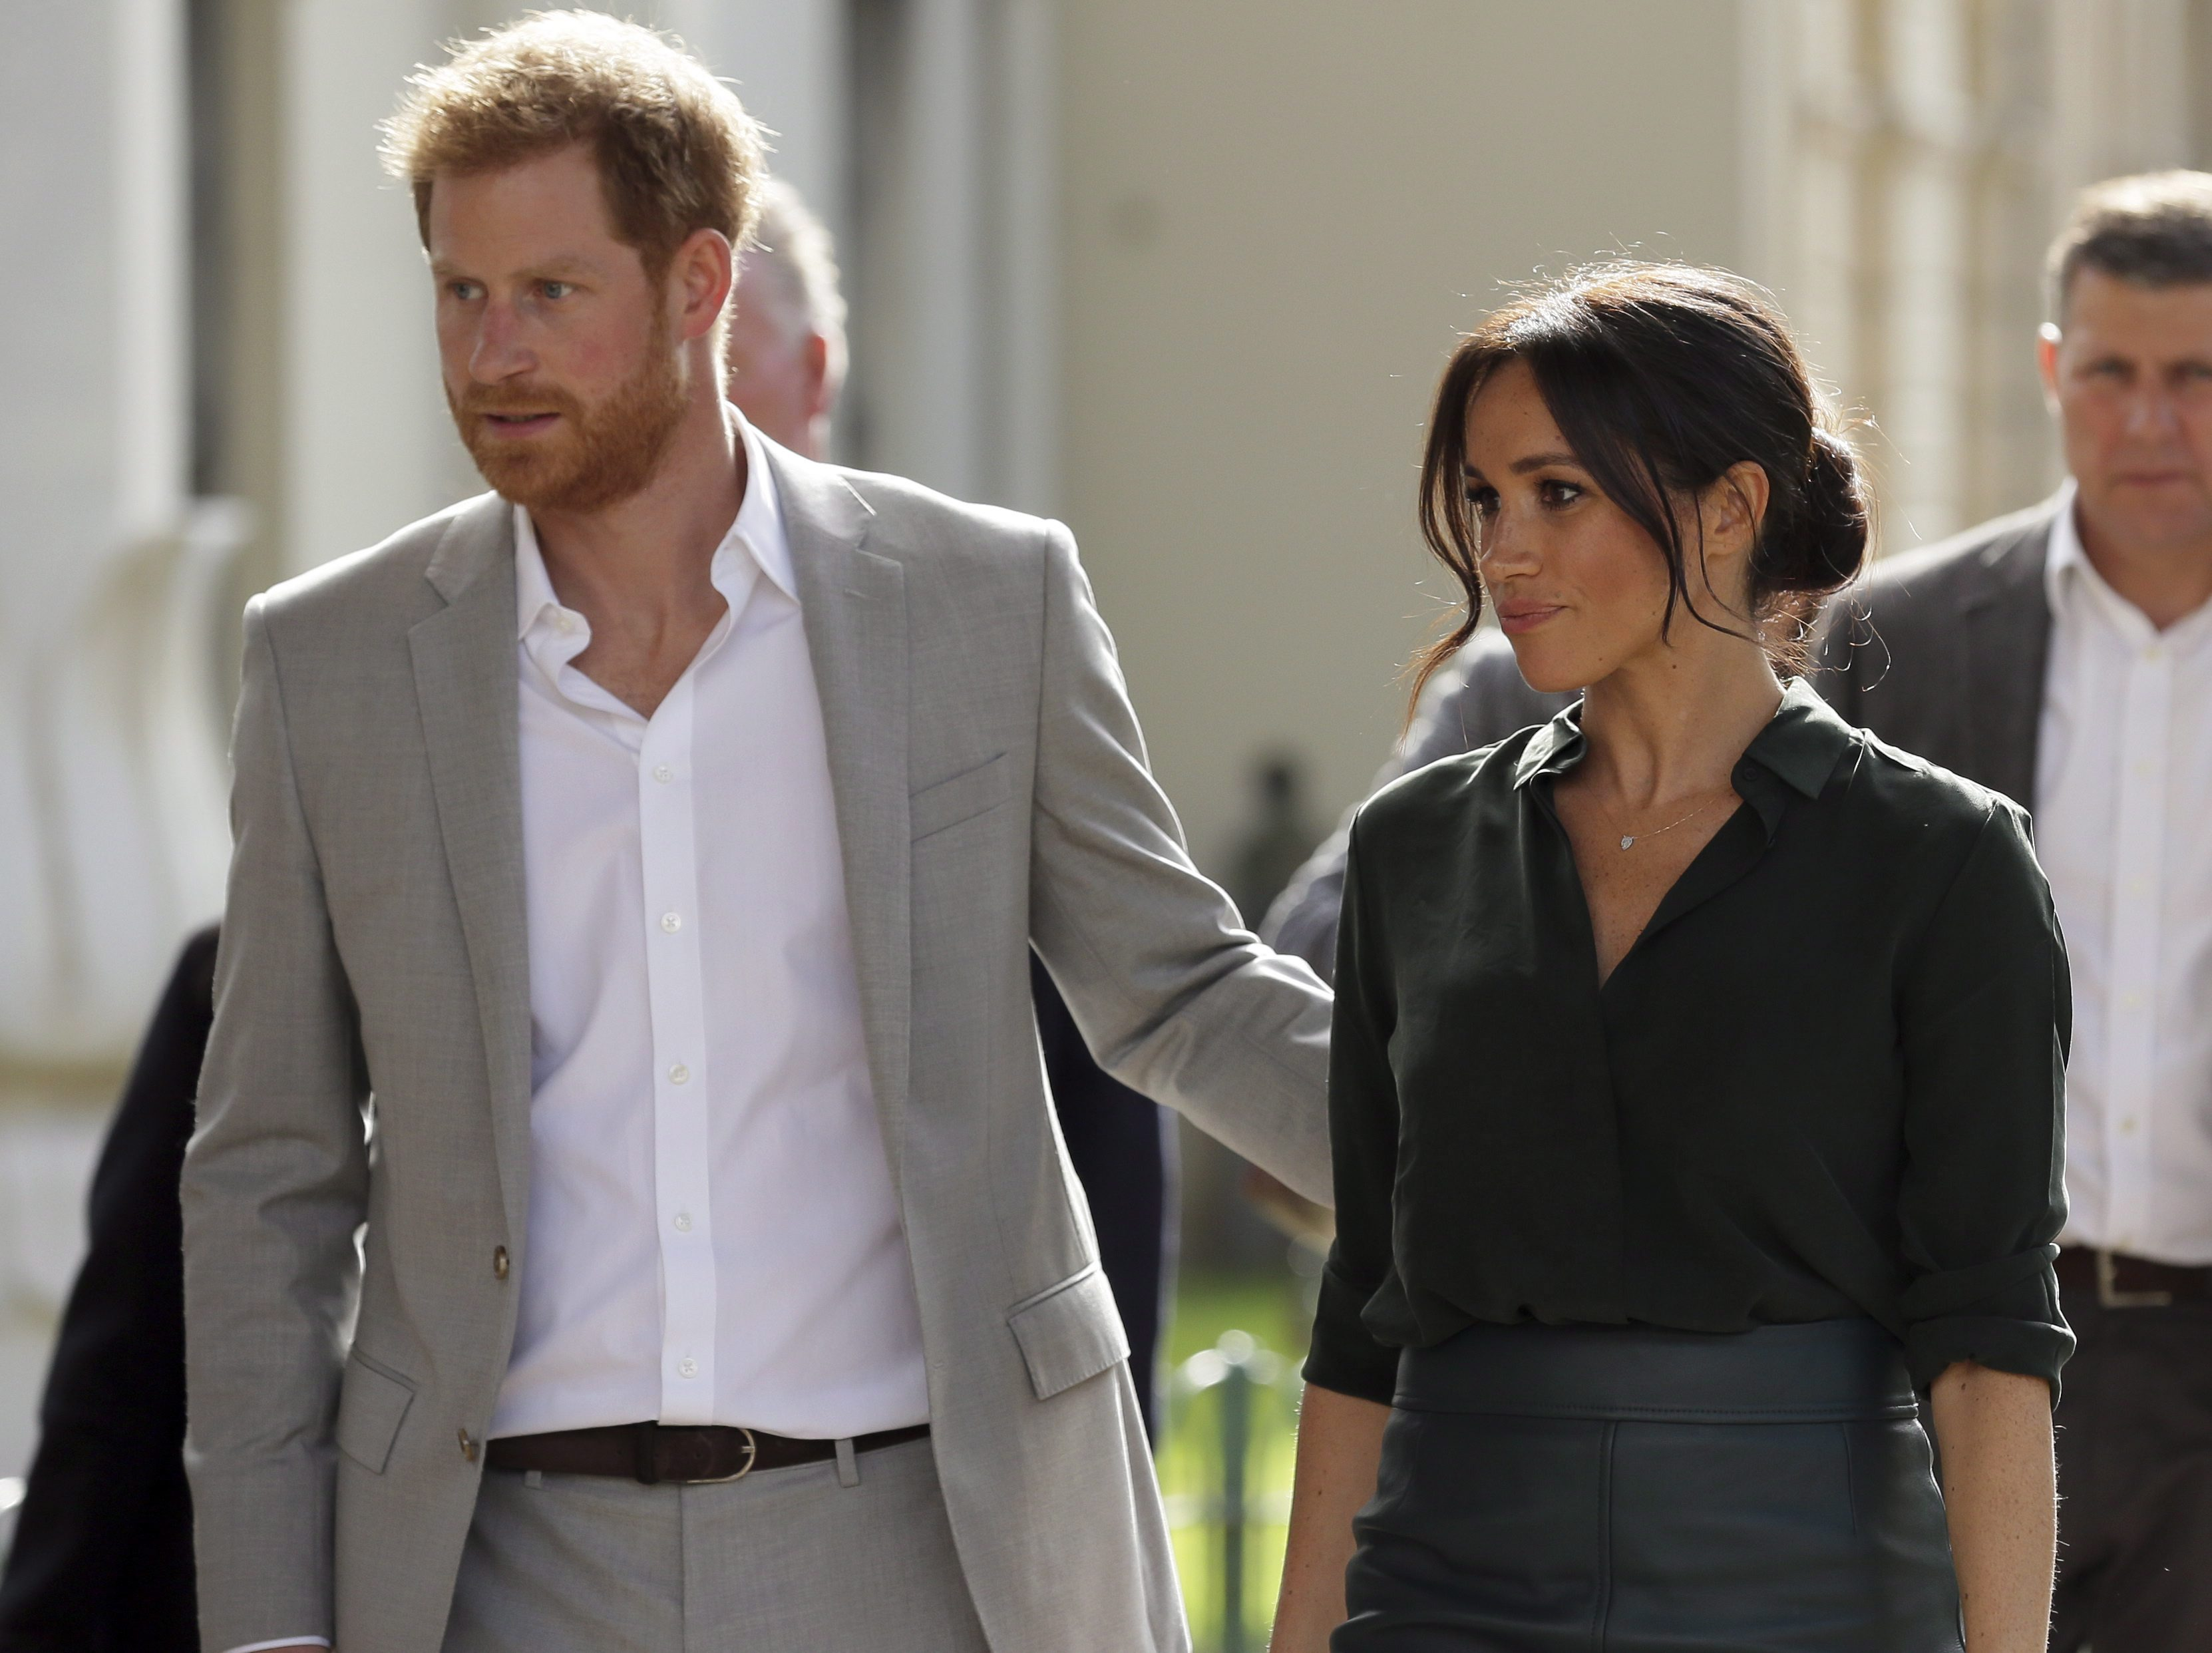 Revealed In Court: Palace Staff Assisted In Leaking 'High Grade' Information On Meghan Markle's Letter